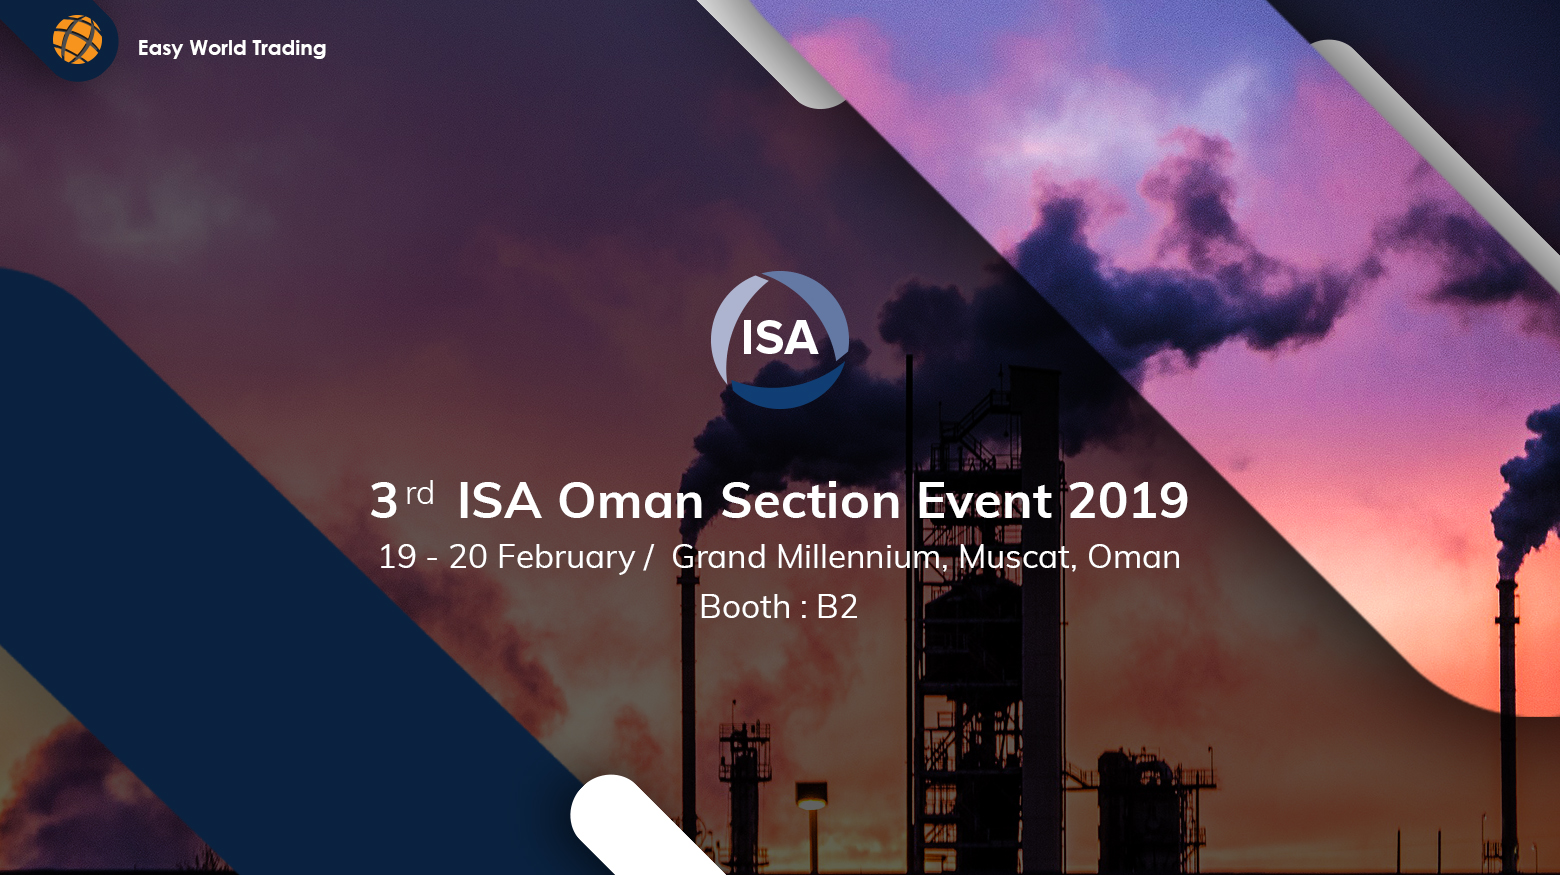 Easy-World-Group-blog-ISA-Oman-Section-Event-2019-banner